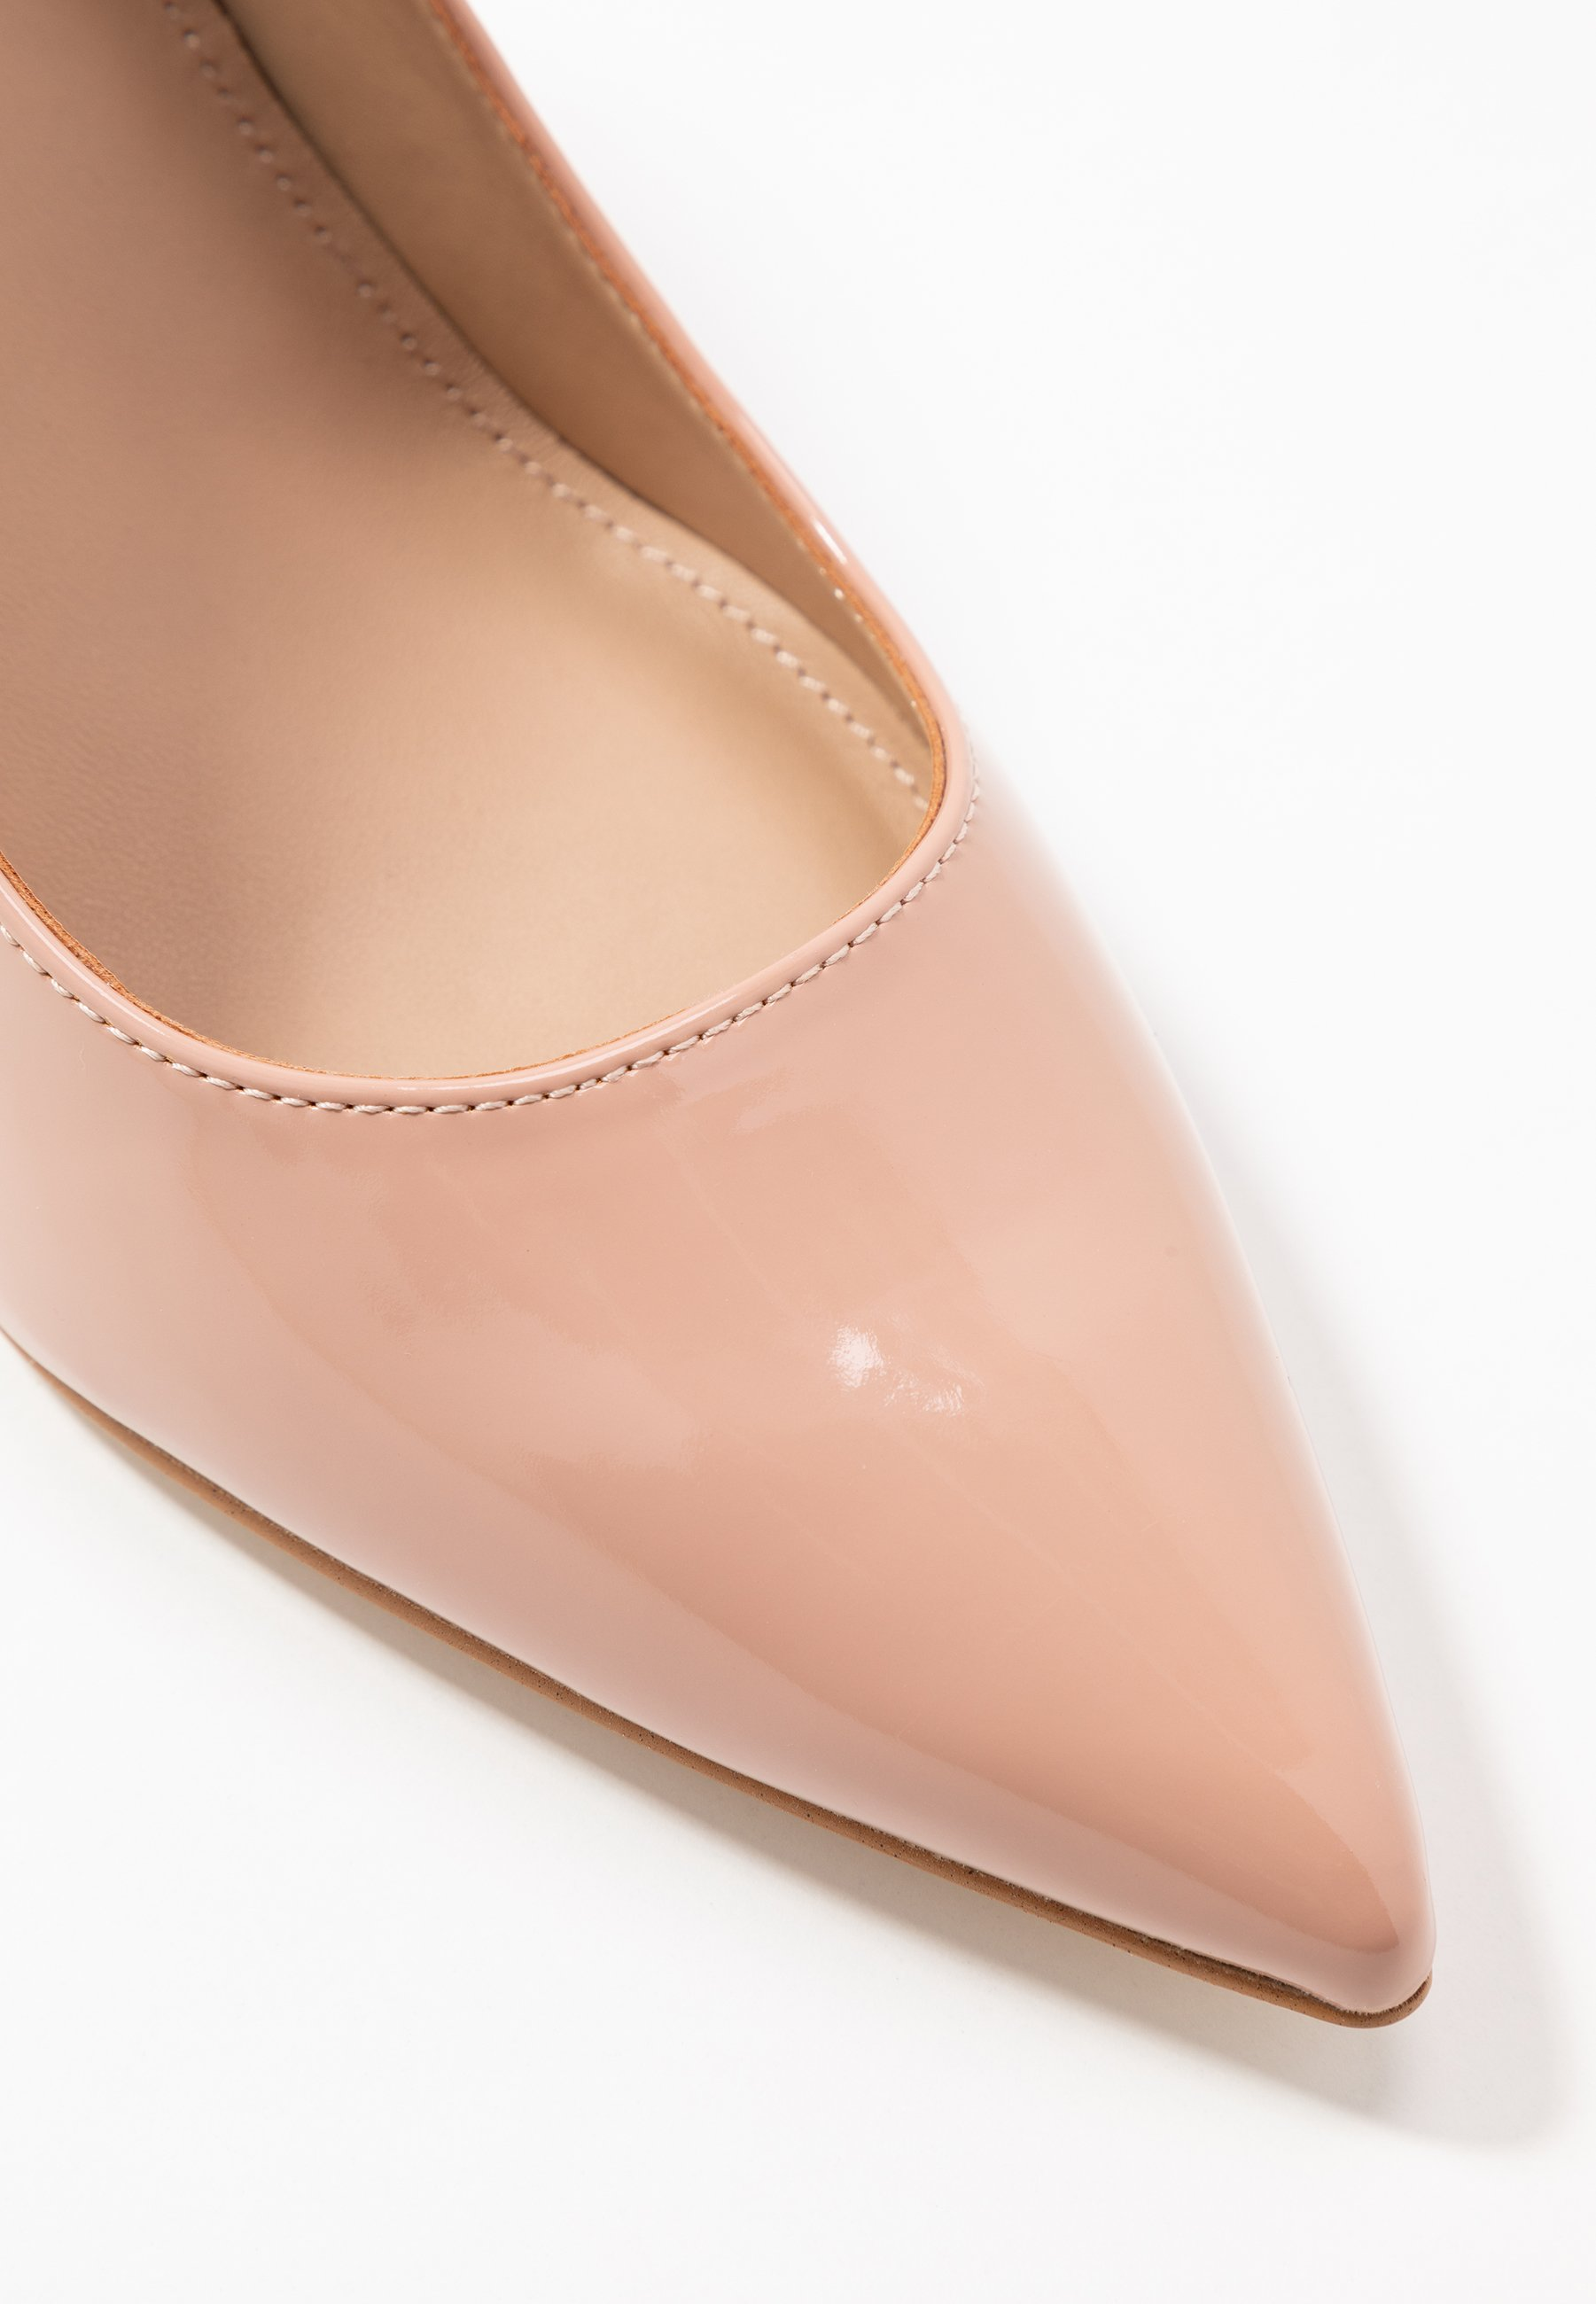 Guess Pumps natural/nude